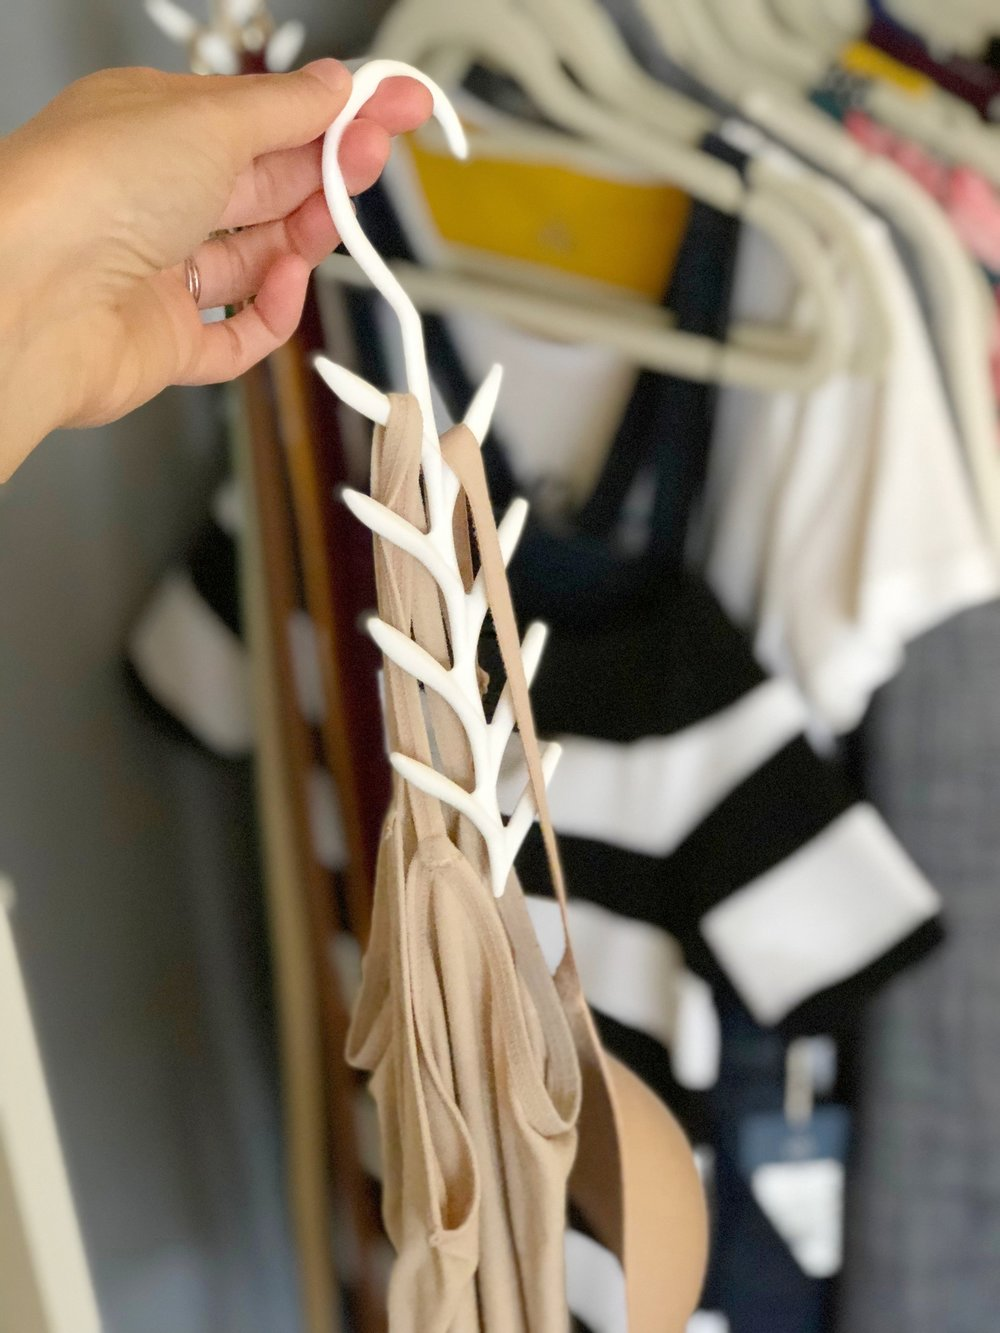 Style Shop Denver - How to Organize Your Closet Accessories